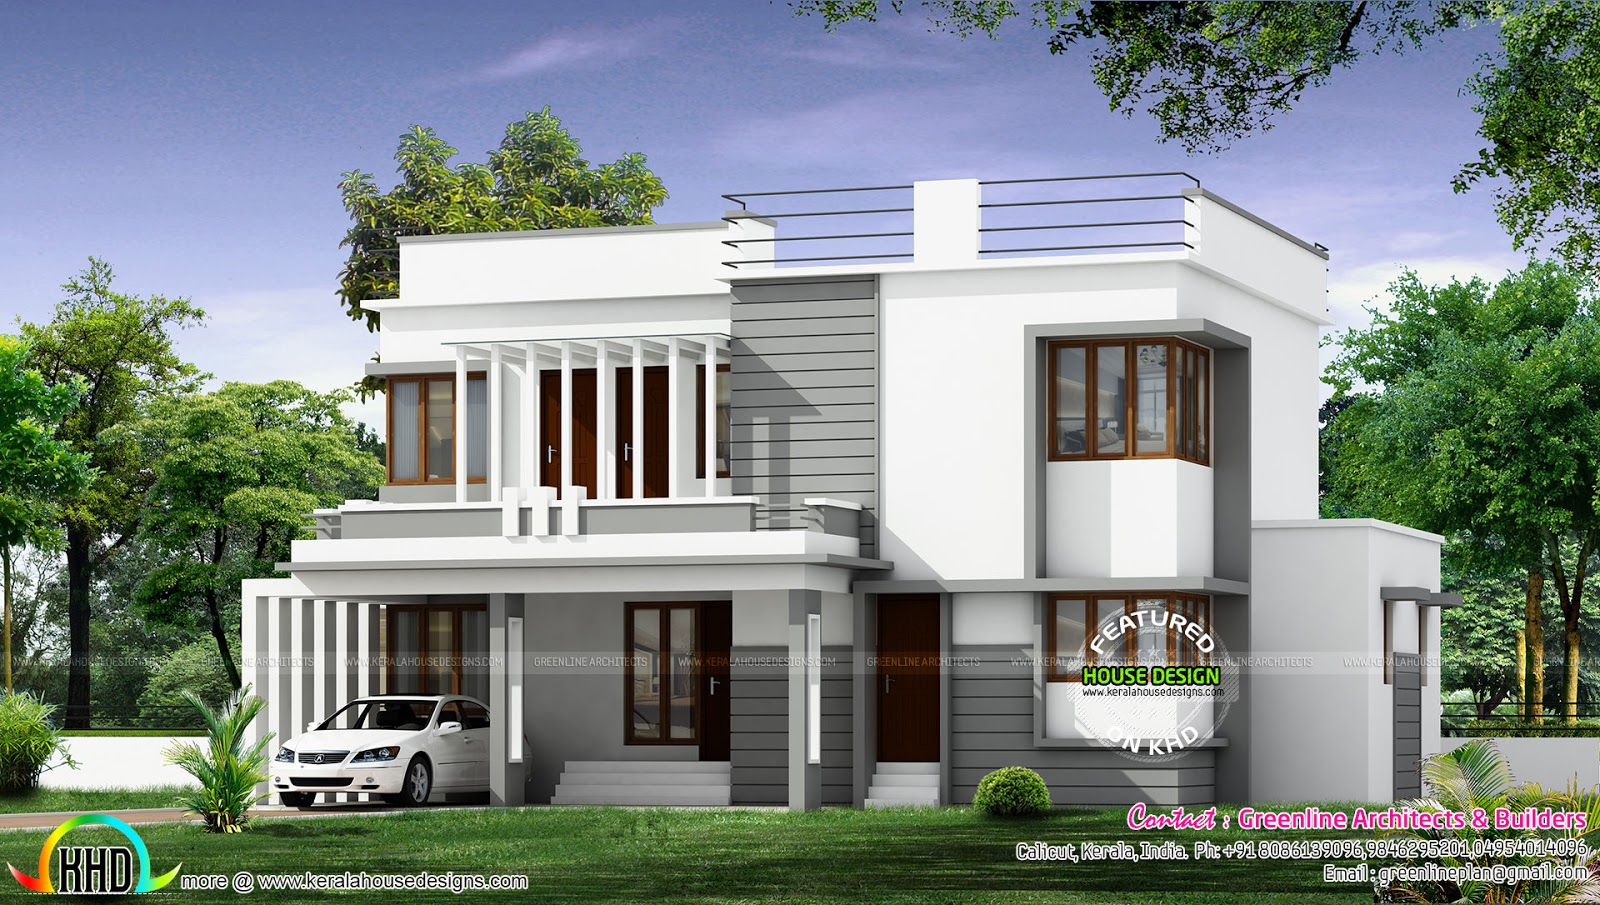 New modern house architecture kerala home design and for Modern home design 2016